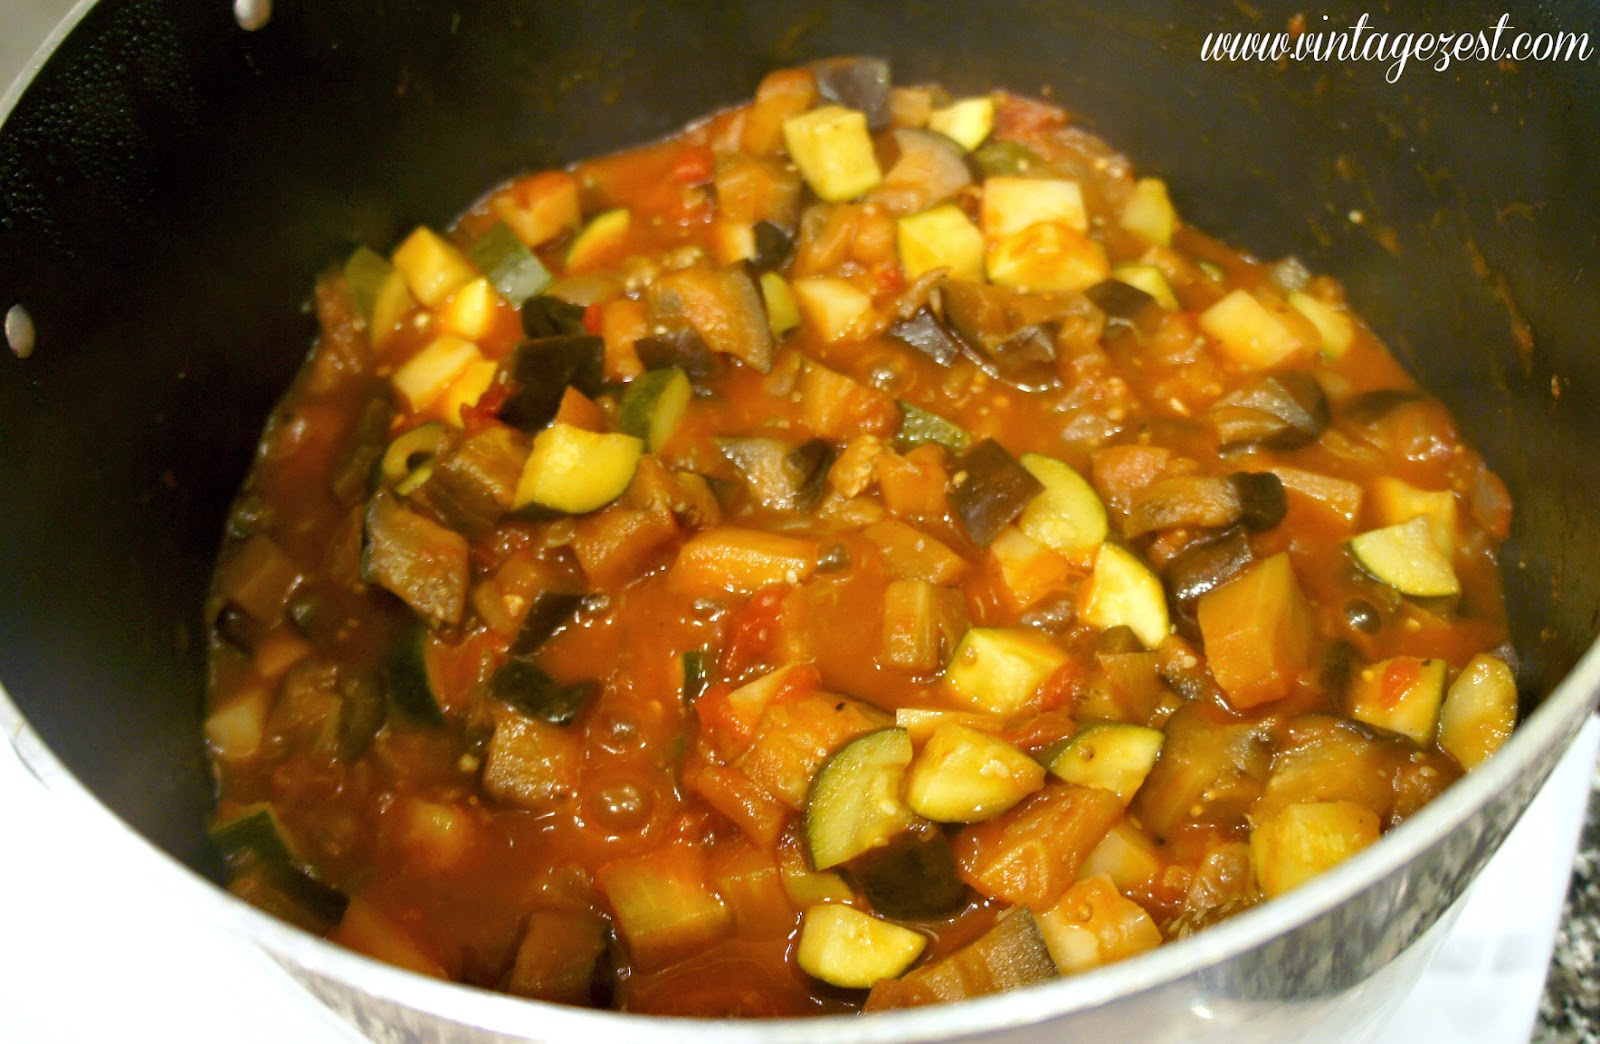 Veggie Güveç: Turkish Eggplant Stew #DinnerDone #CollectiveBias